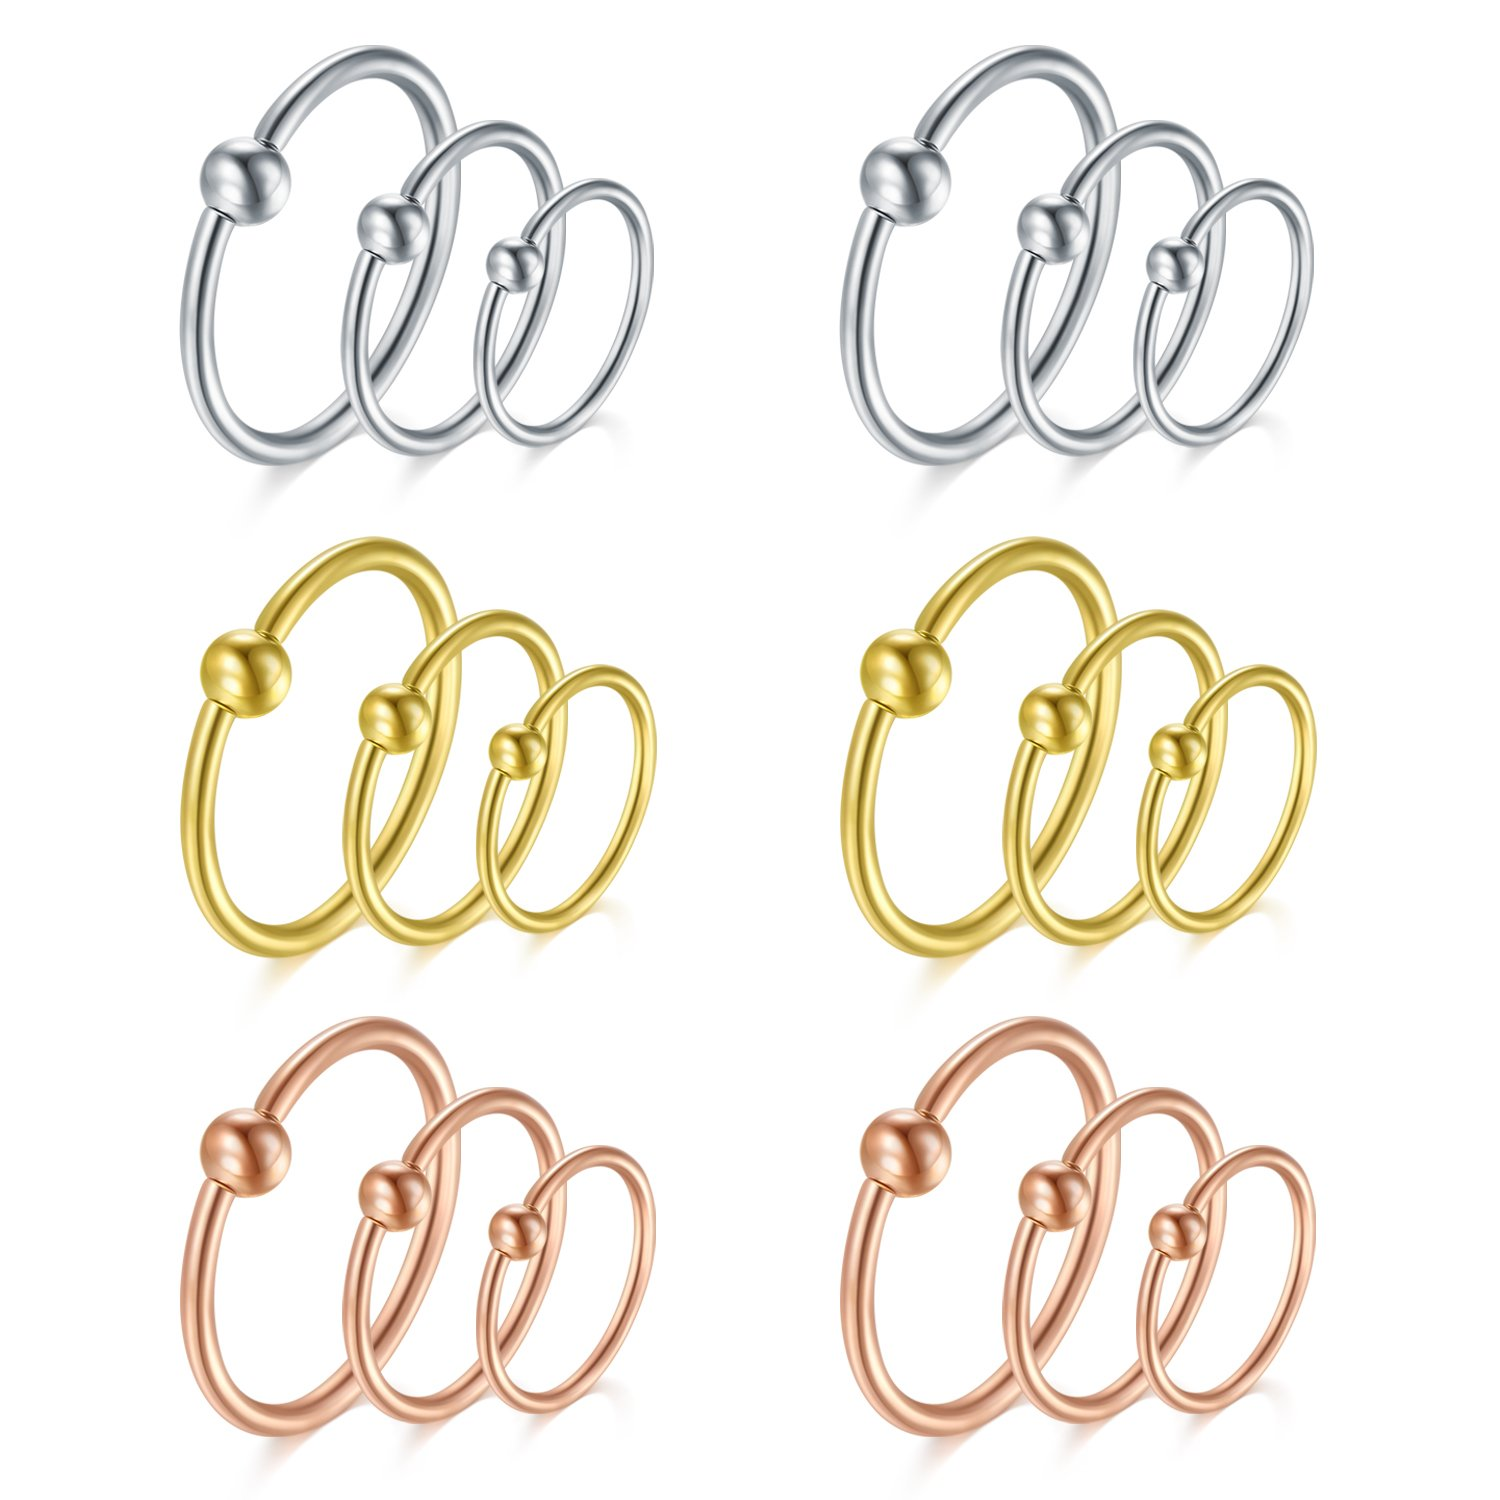 vcmart Cartilage Earring-16G Nose Rings Hoop Captive Bead Rings 8mm Surgical Steel Eyebrow Tragus Helix Septum Piercing Ring 18pcs Gold Silver Rose Gold